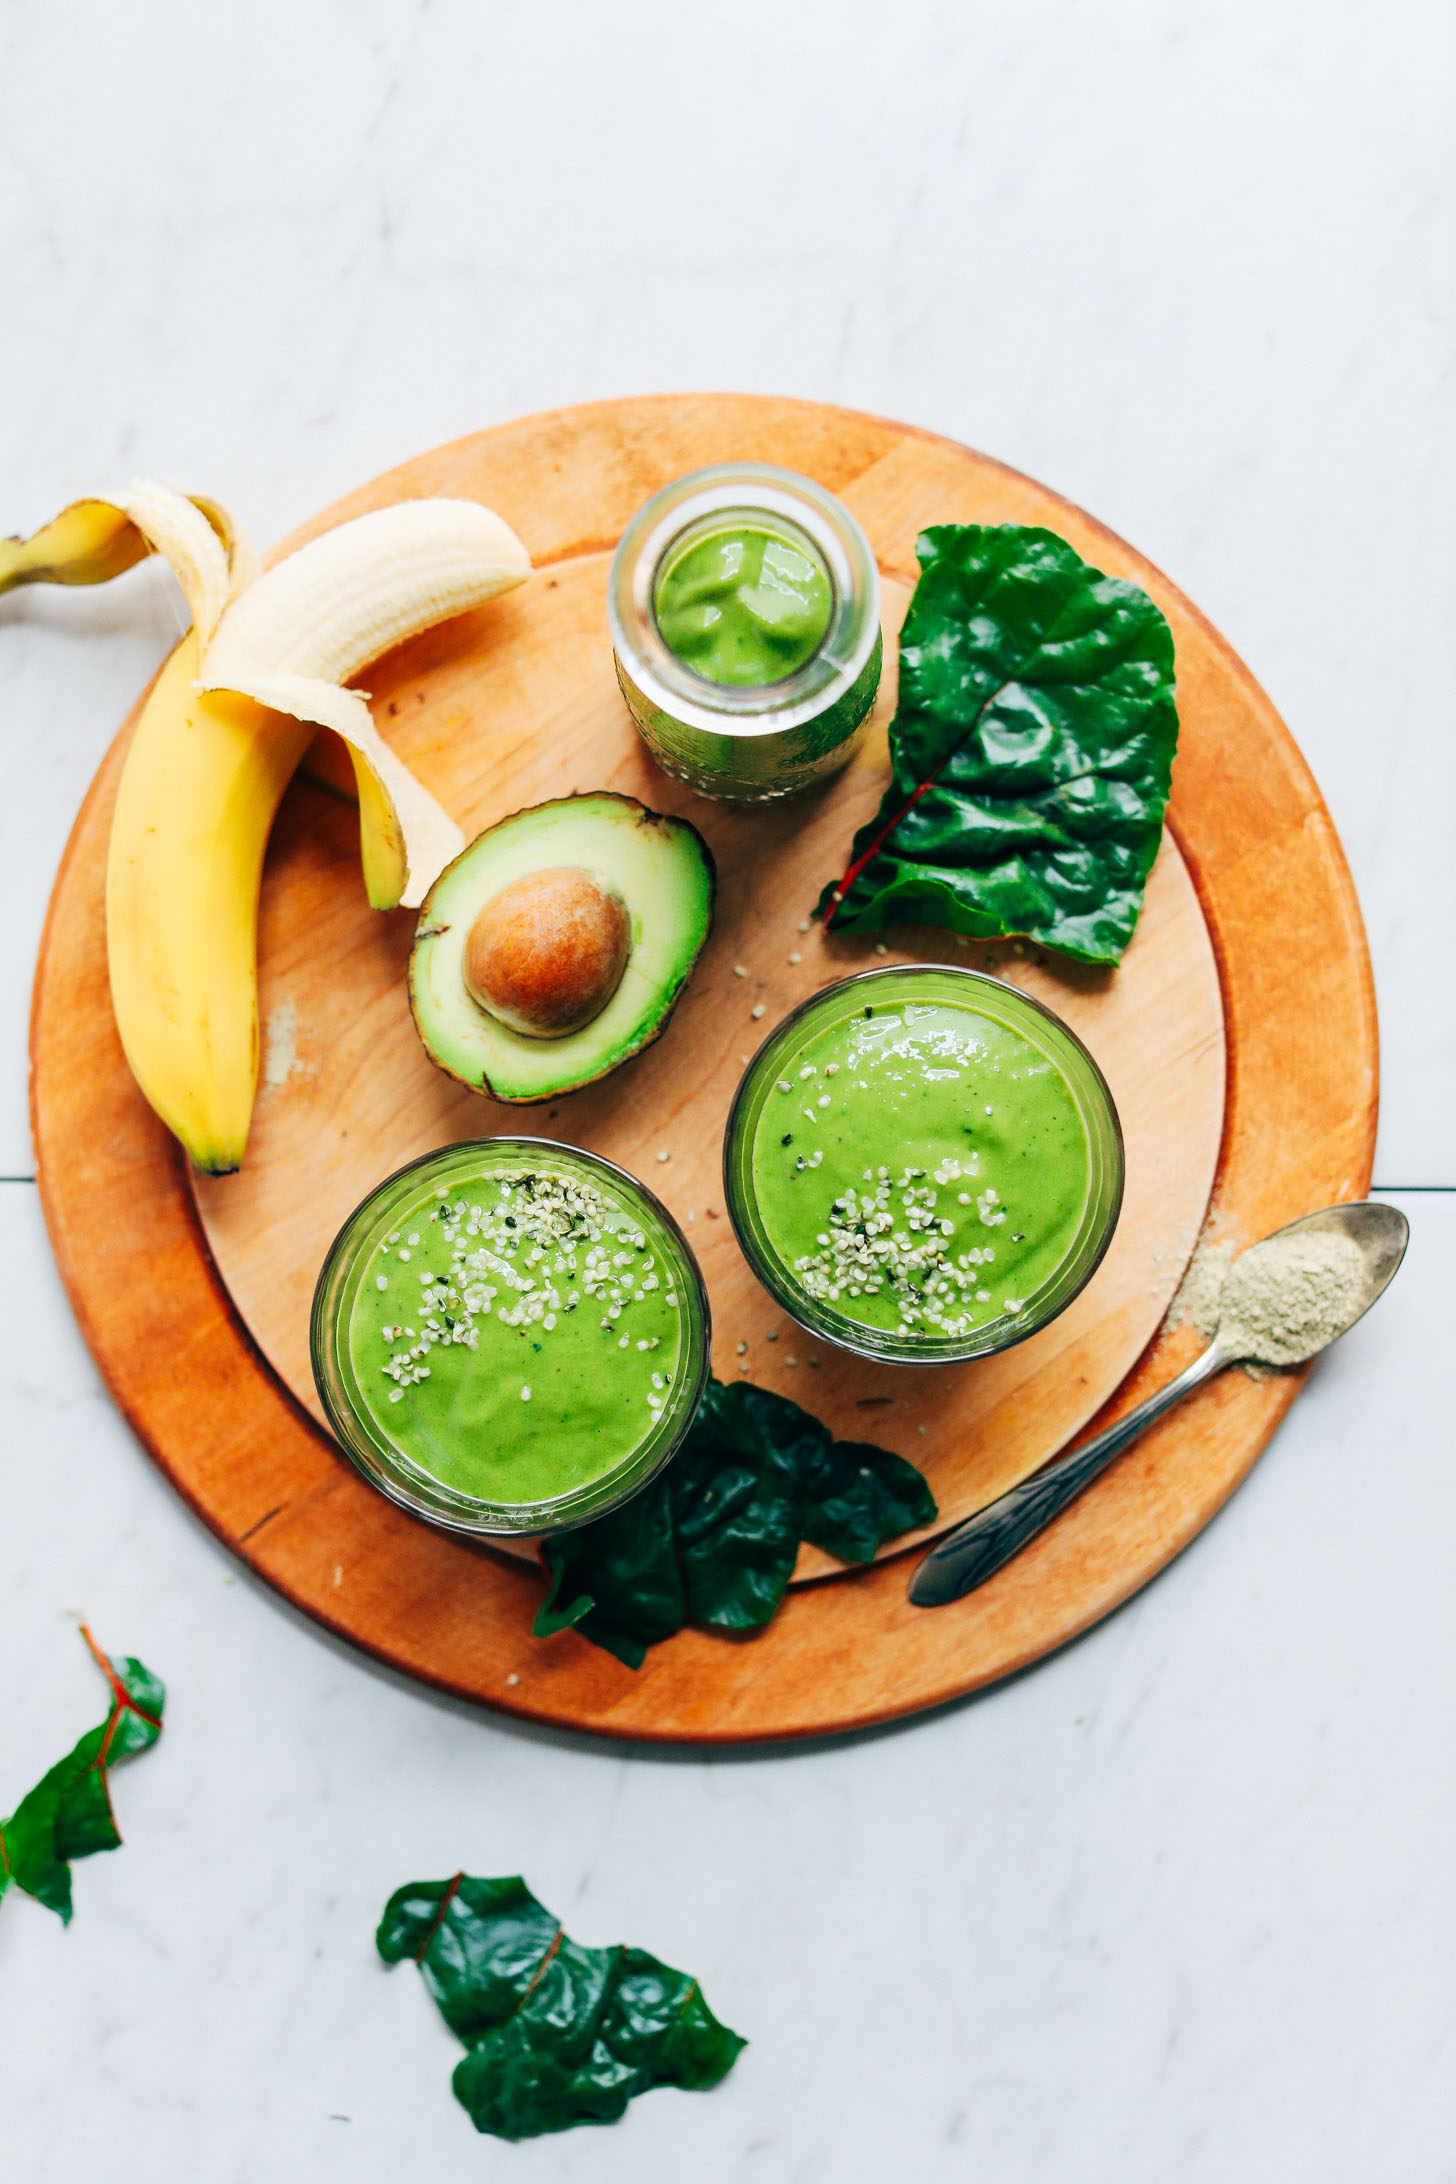 CREAMY Avocado Green Smoothie! 5 ingredients, GREEN, SO healthy + satisfying #vegan #banana #plantbased #smoothie #greensmoothie #avocado #glutenfree #minimalistbaker